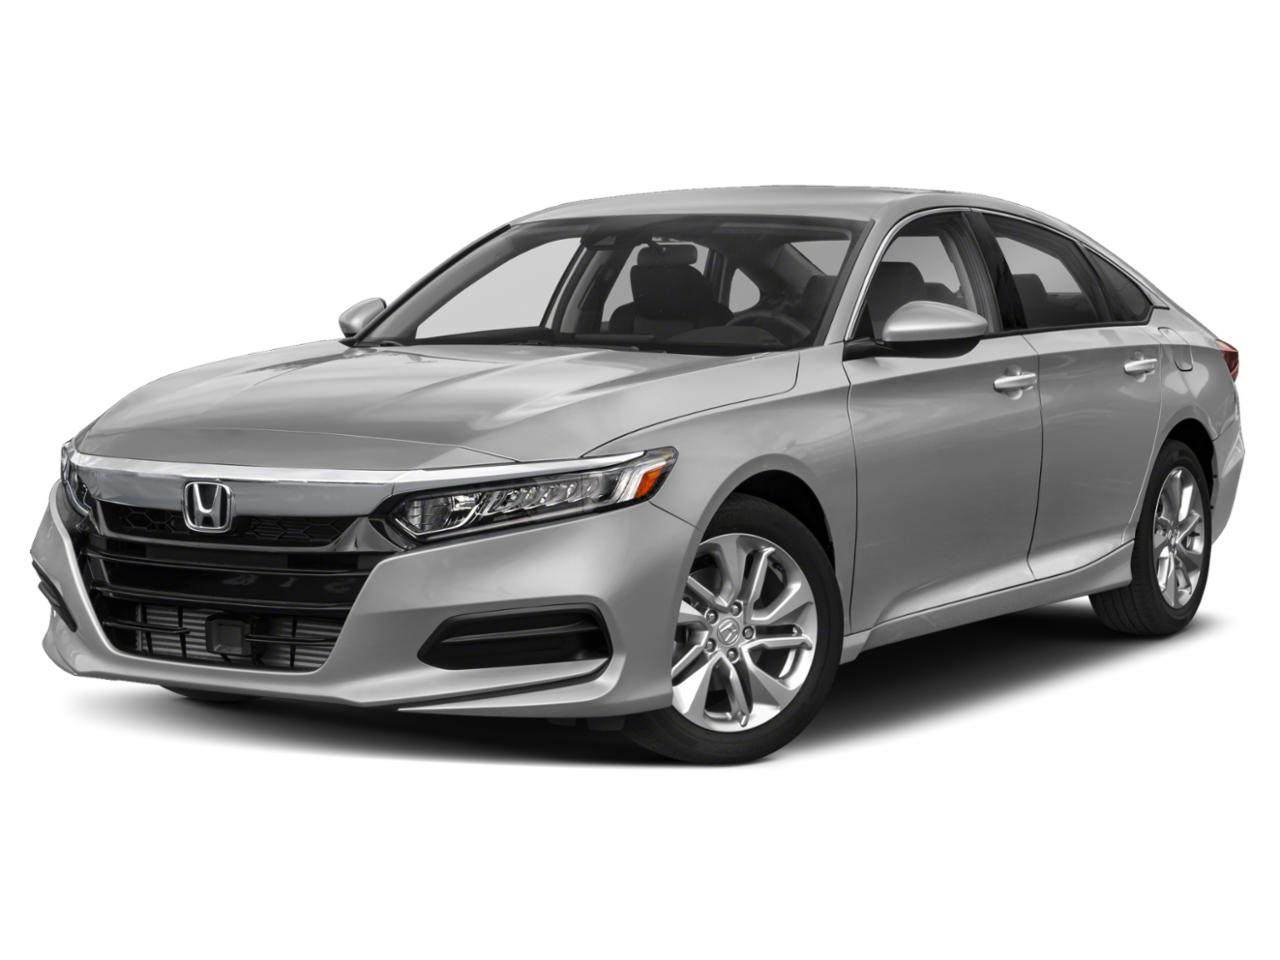 2019 Honda Accord Sedan Vehicle Photo in Pittsburg, CA 94565